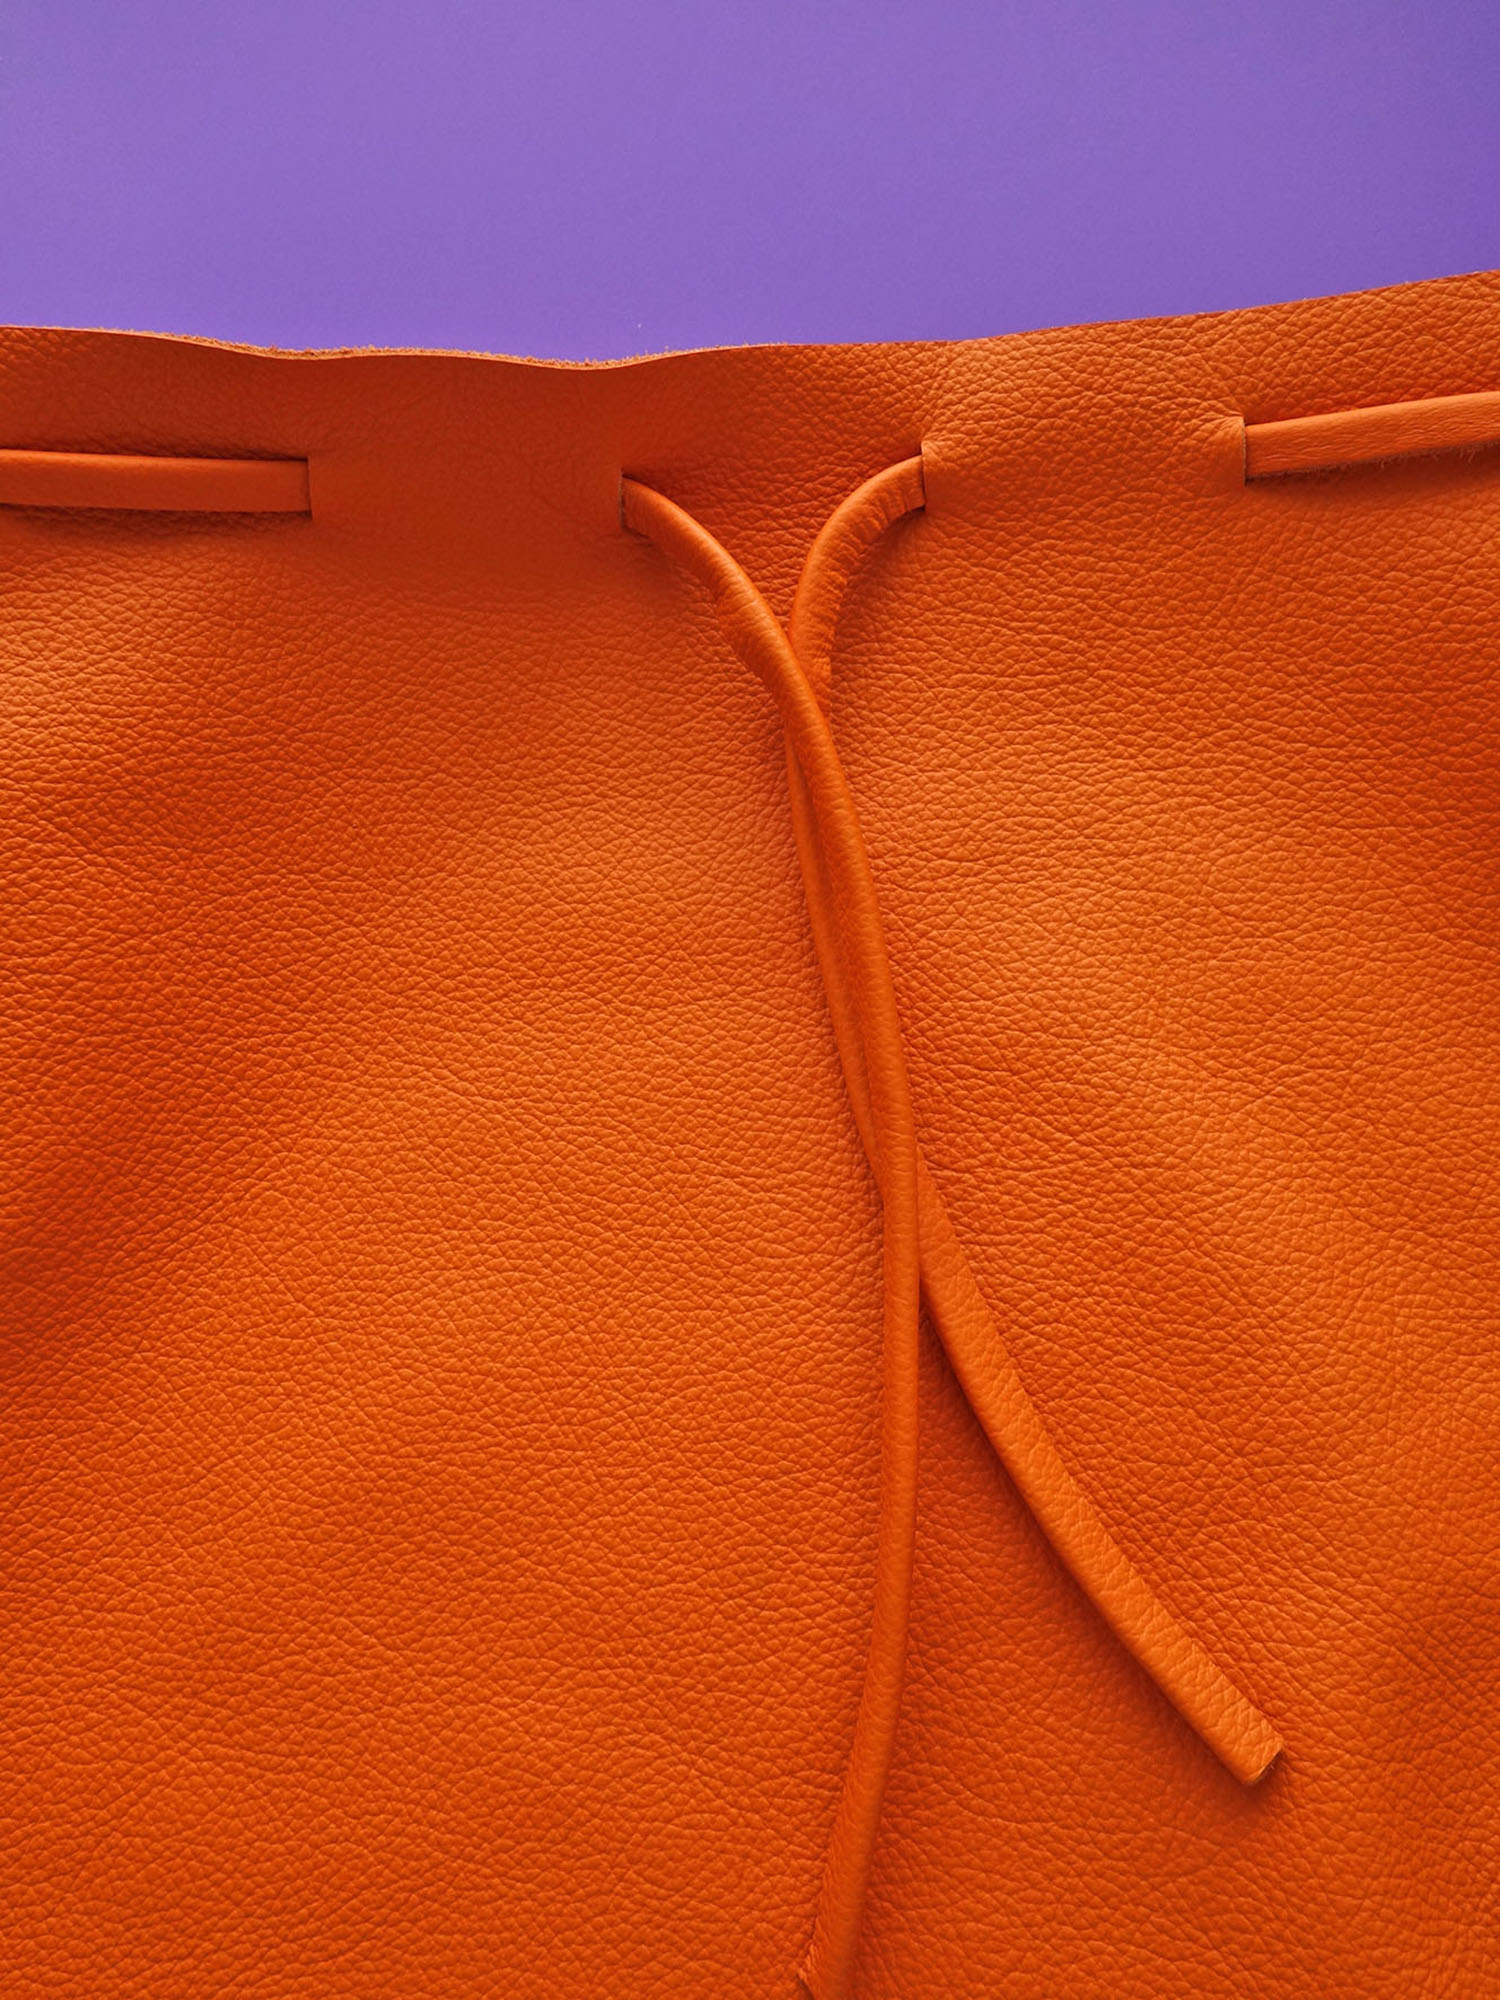 LEATHER BAGS AND POUCHES